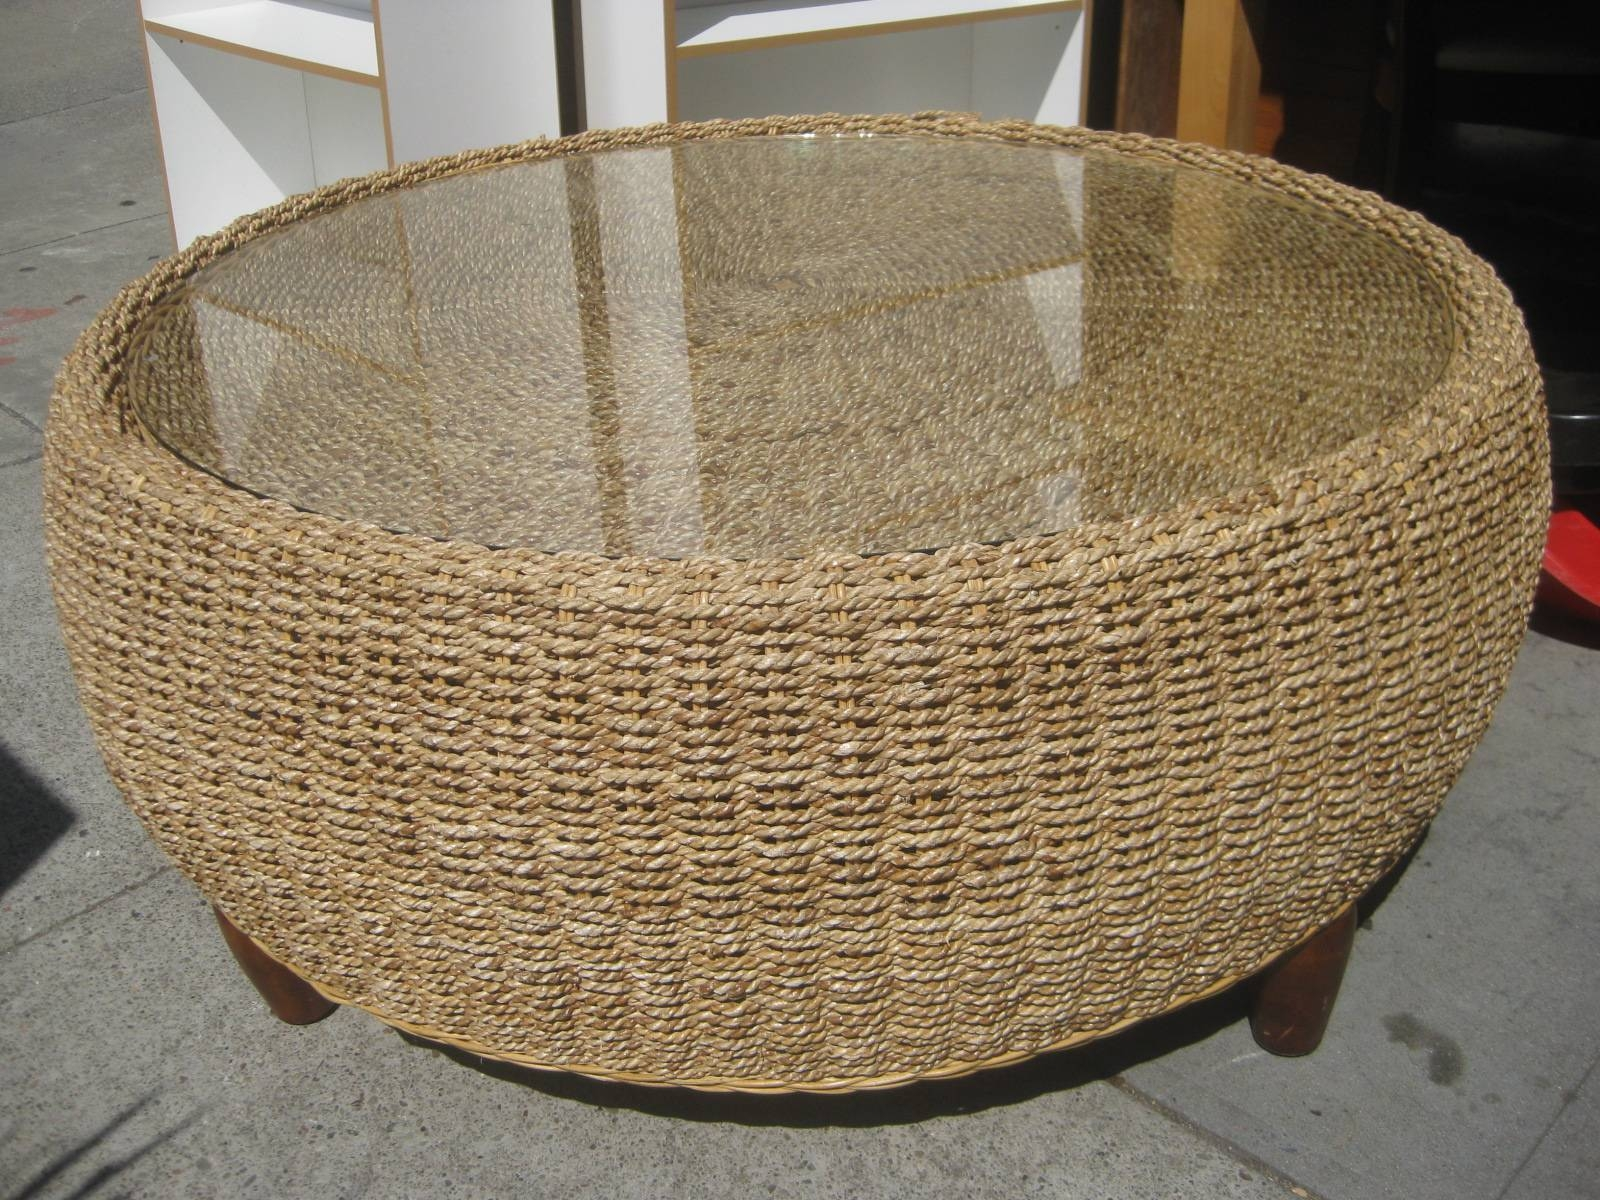 Uhuru Furniture & Collectibles: Sold - Wicker Drum Coffee Table - $70 for Coffee Table With Wicker Basket Storage (Image 21 of 30)